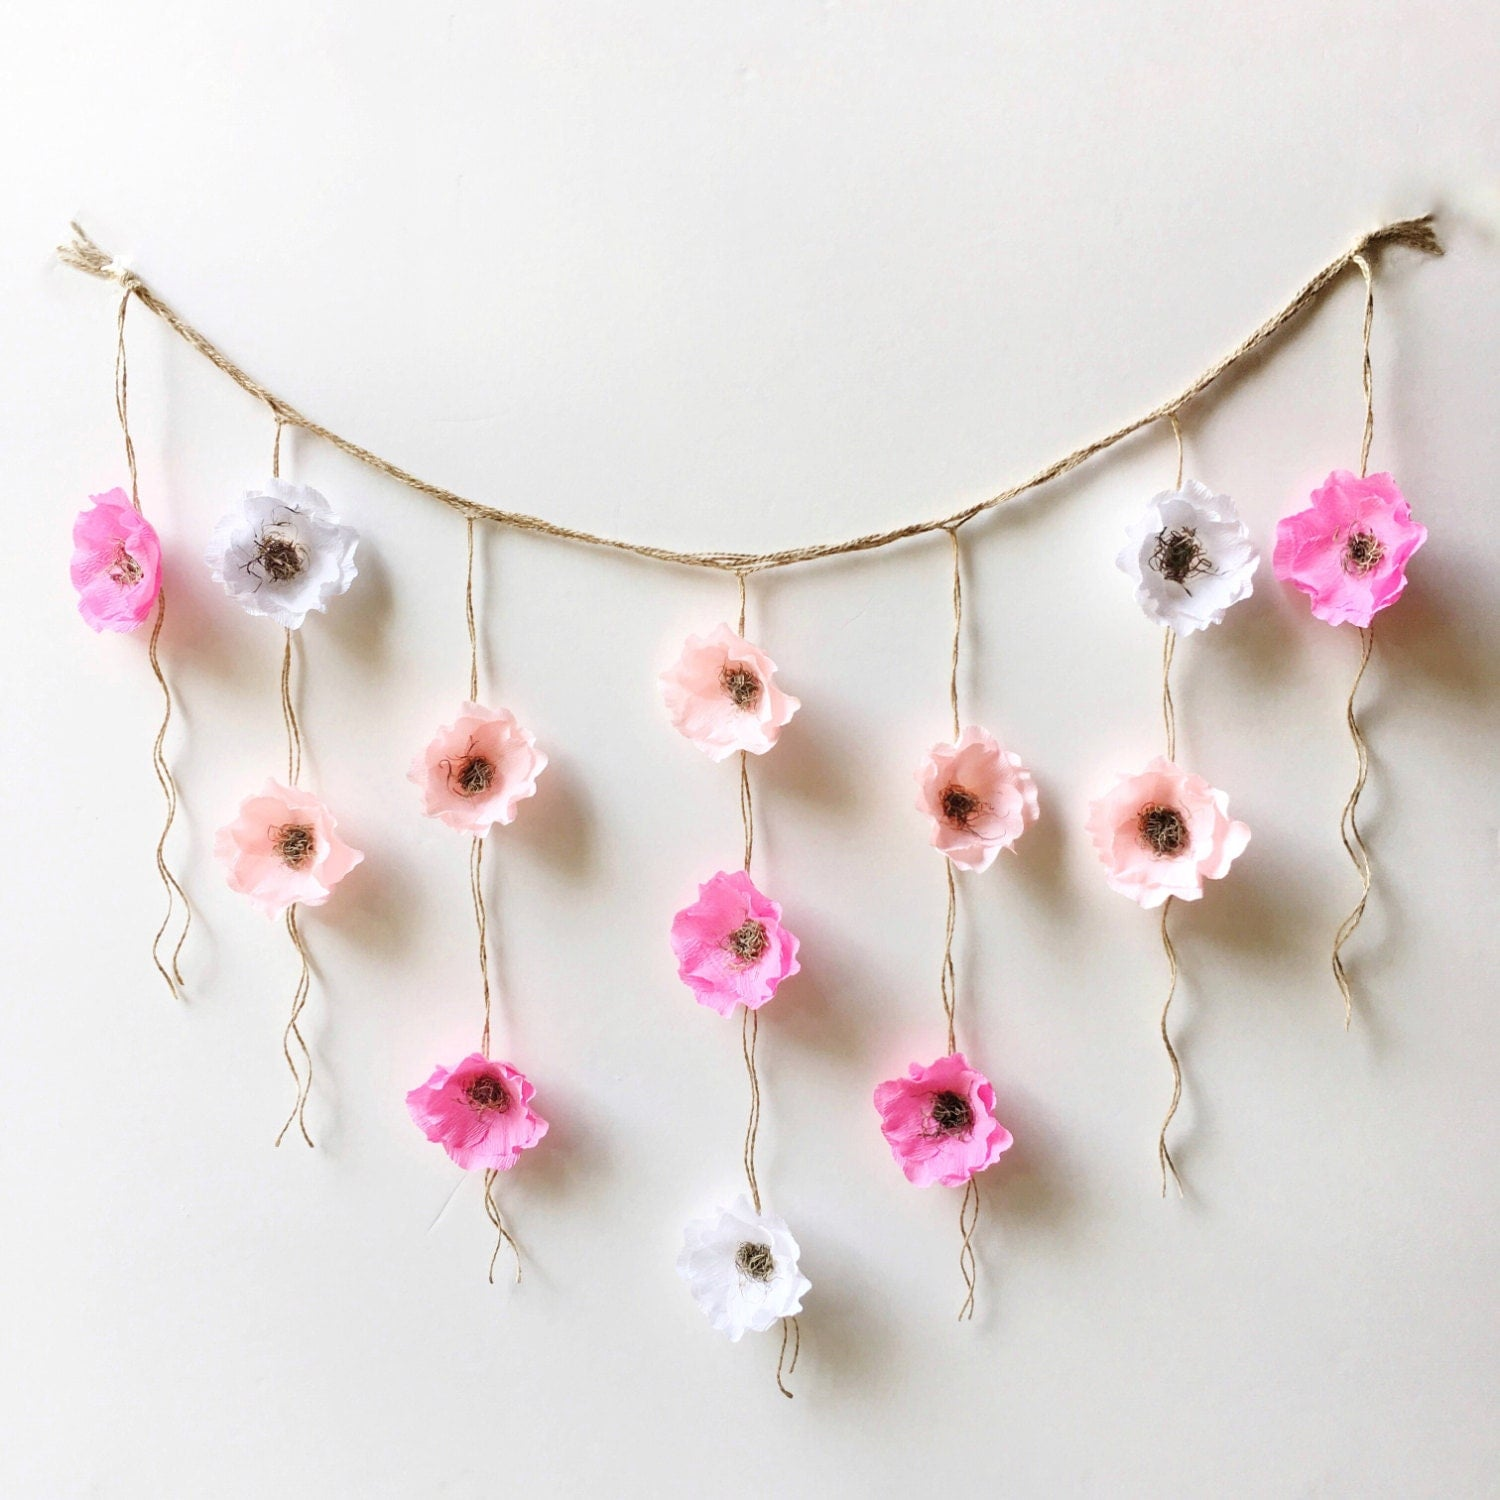 Wall Decoration Paper Flowers : Boho paper flower wall hanging nursery decor dorm